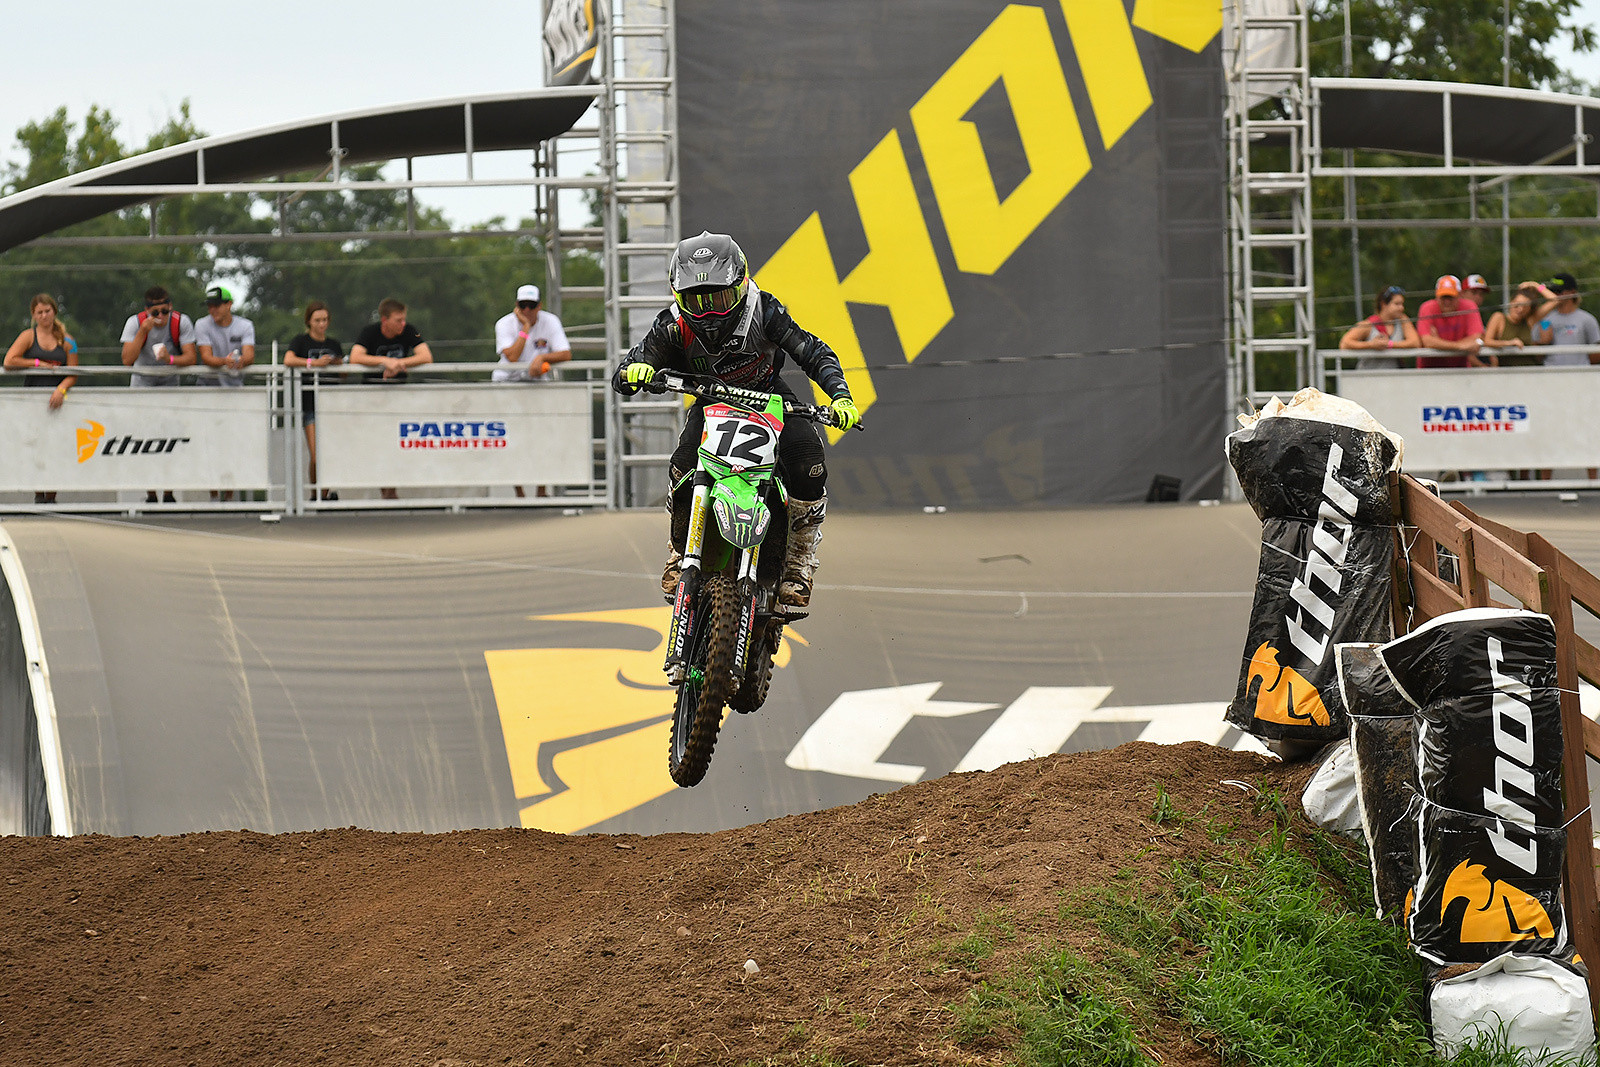 Kawasaki Team Green's Hannah Hodges had a statement moto in her first #LLMX race of the week.